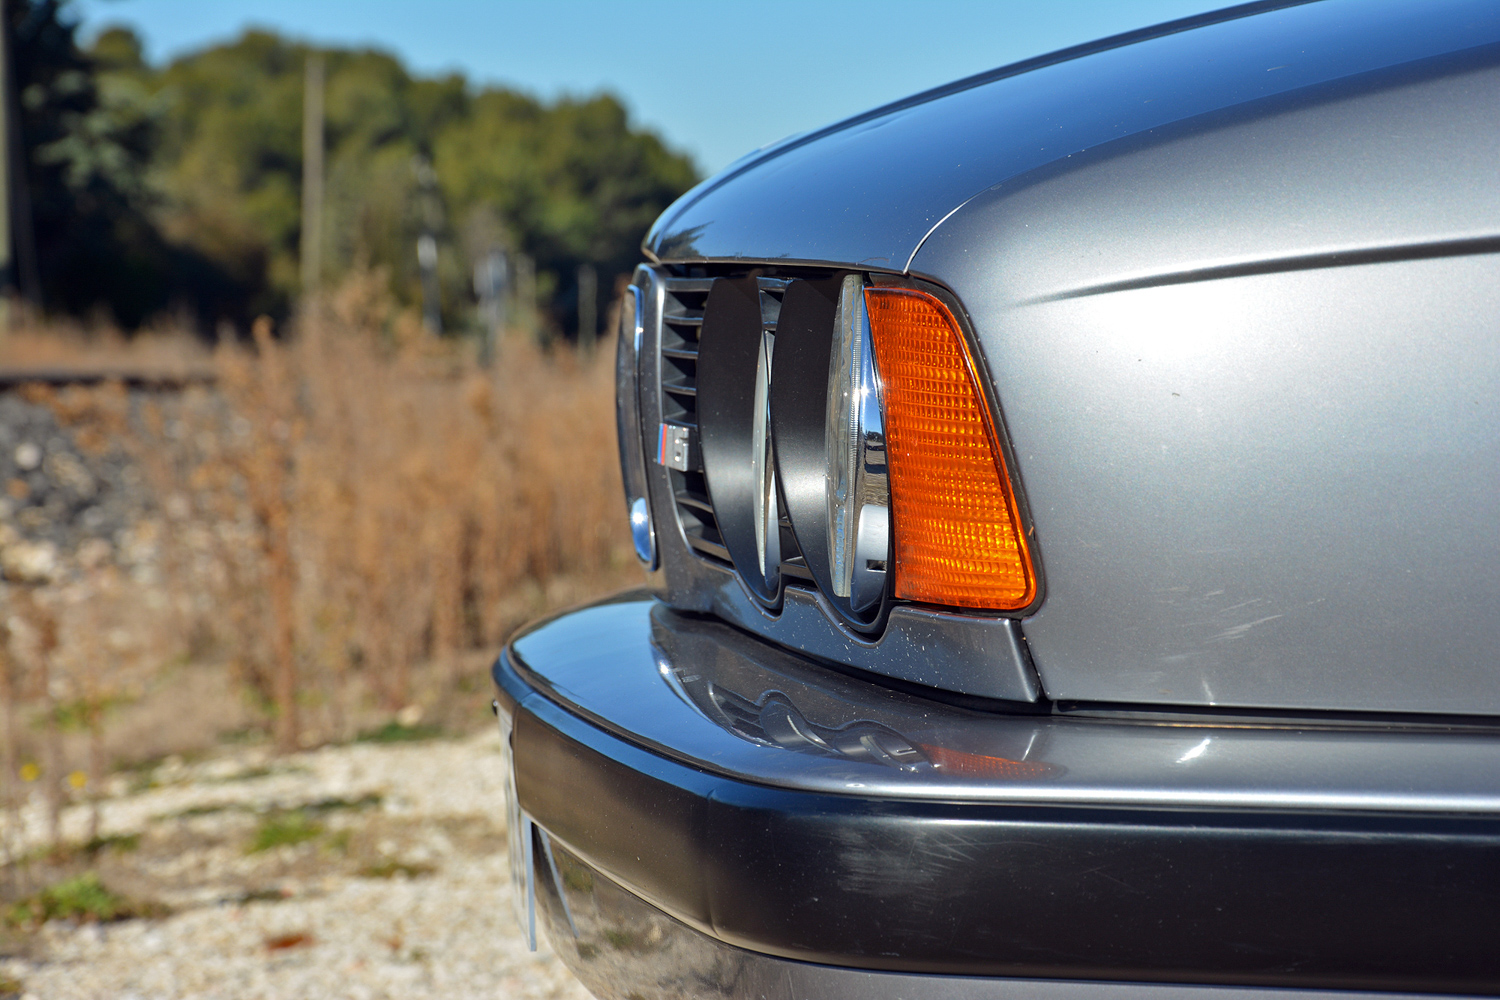 BMW M5 (E34) grille and headlight detail